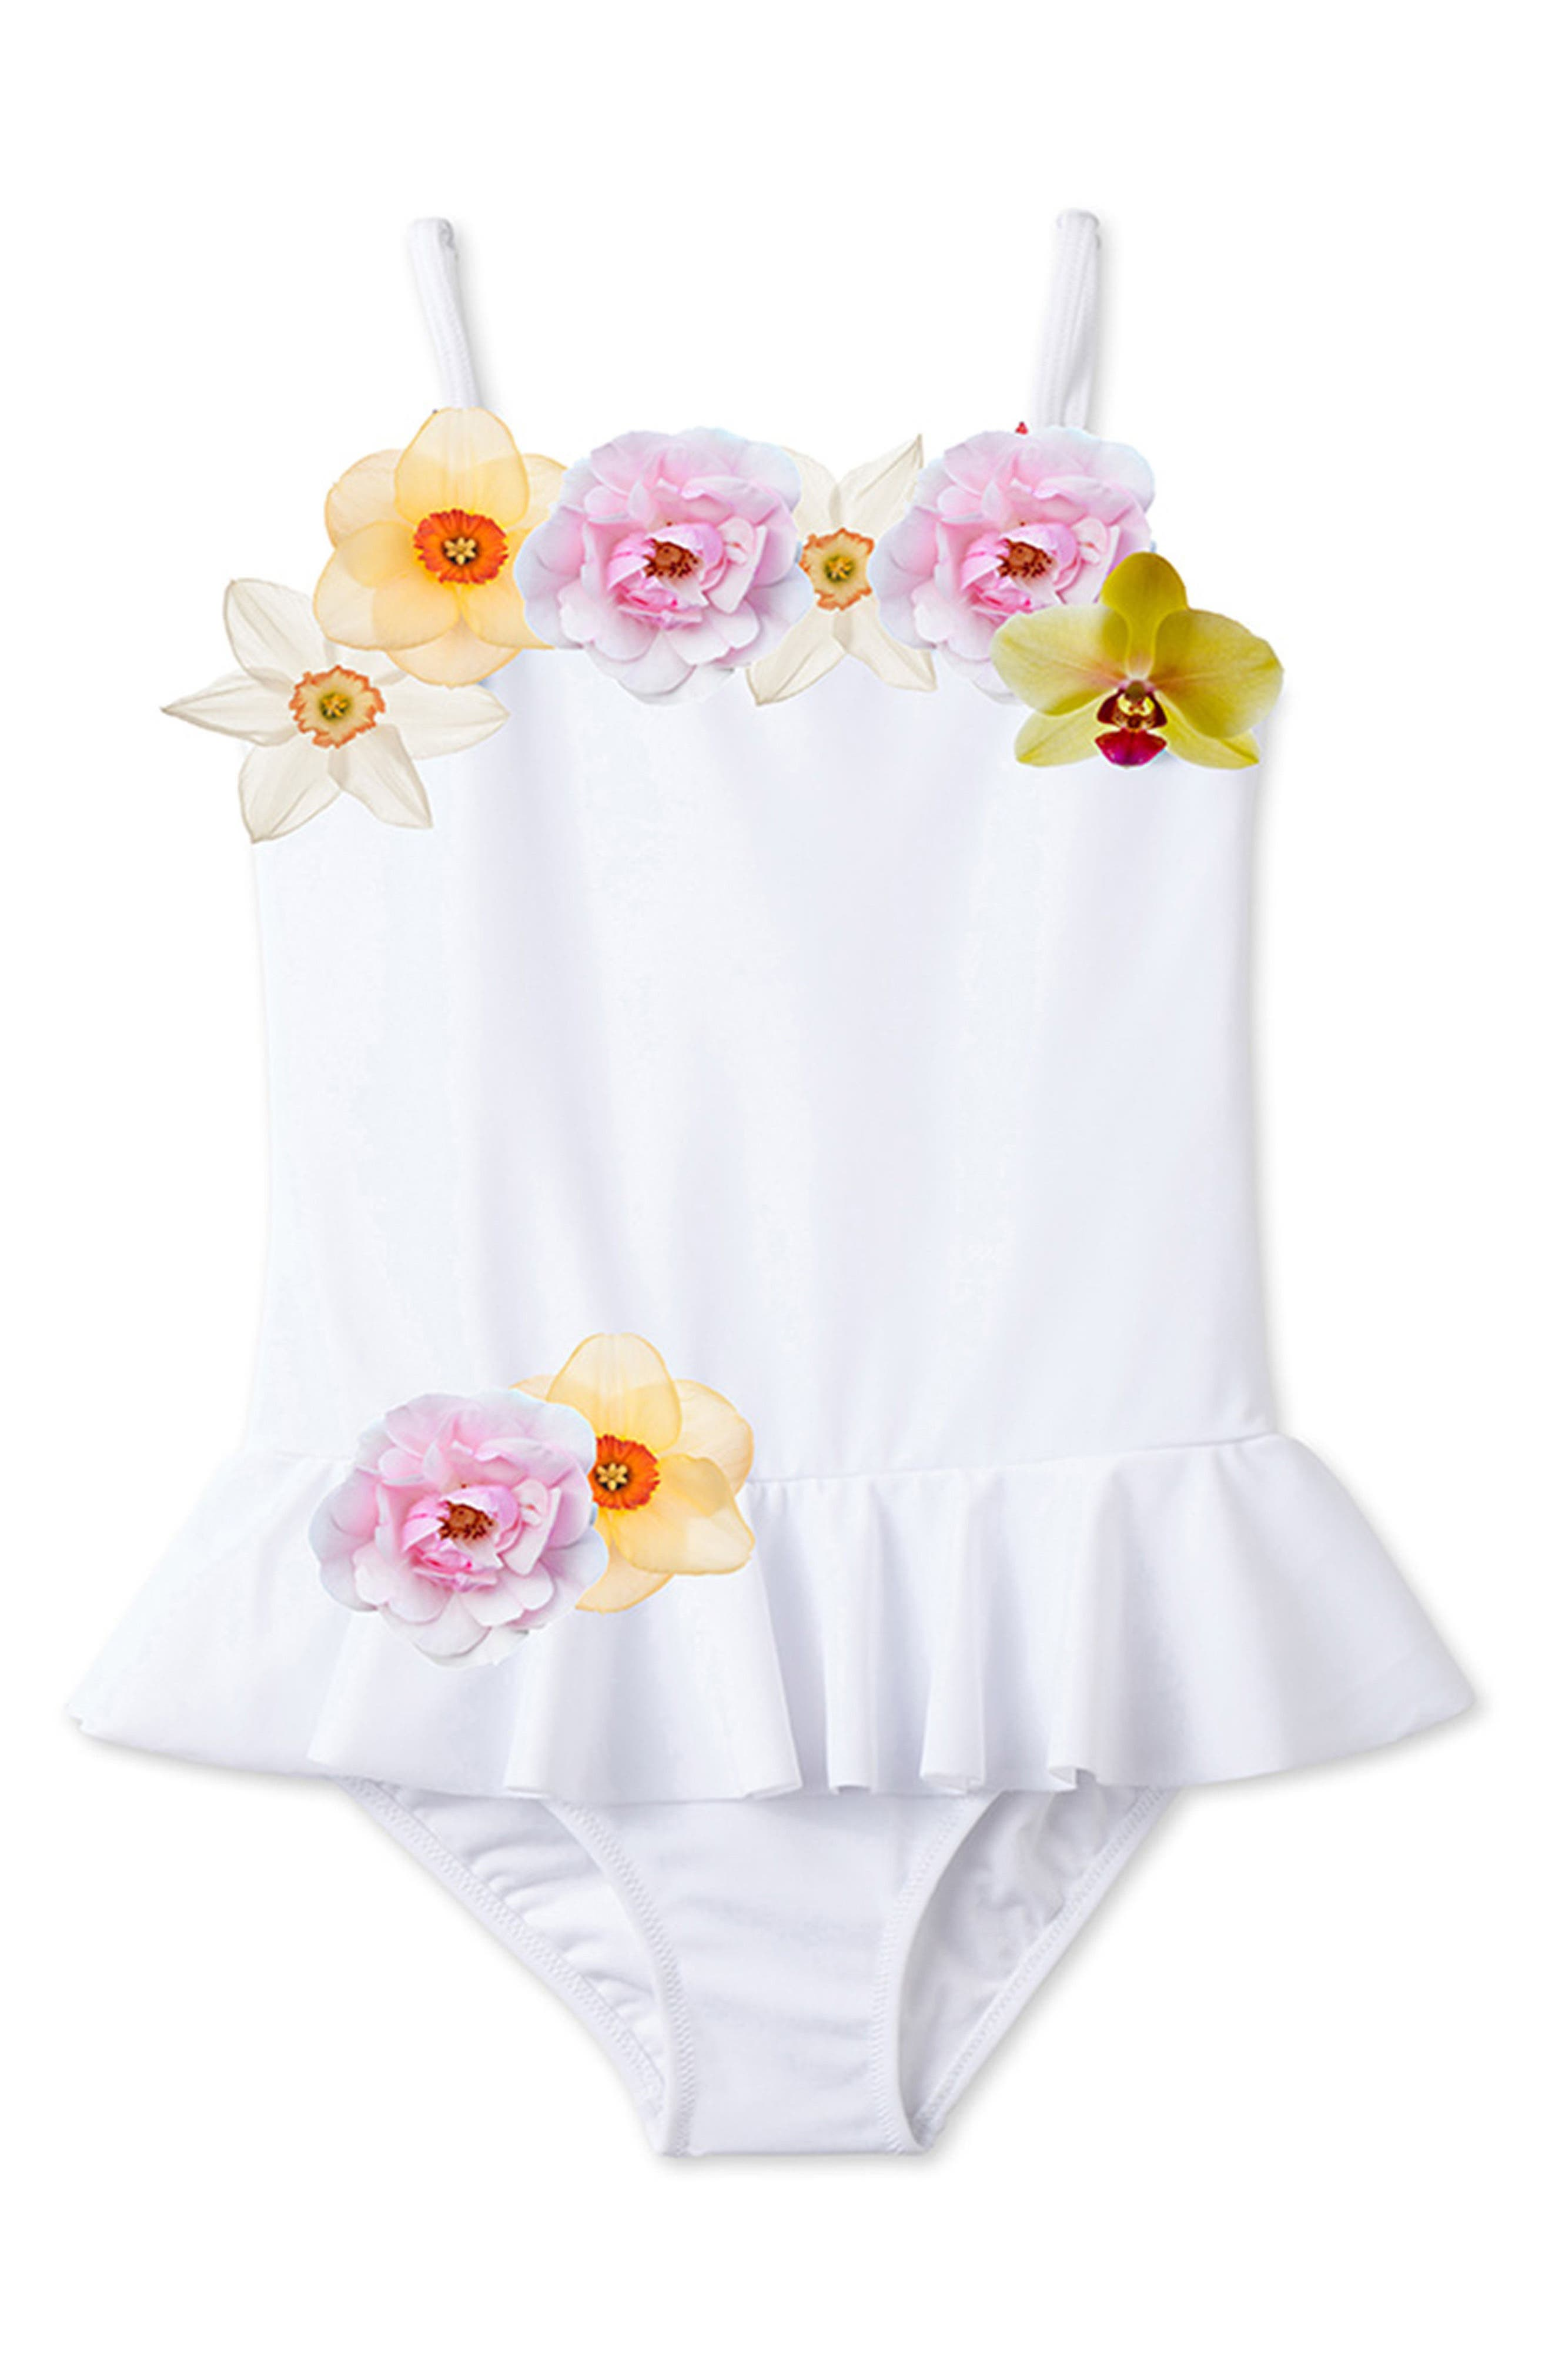 Main Image - Stella Cove 3D Floral One-Piece Swimsuit (Toddler Girls, Little Girls & Big Girls)